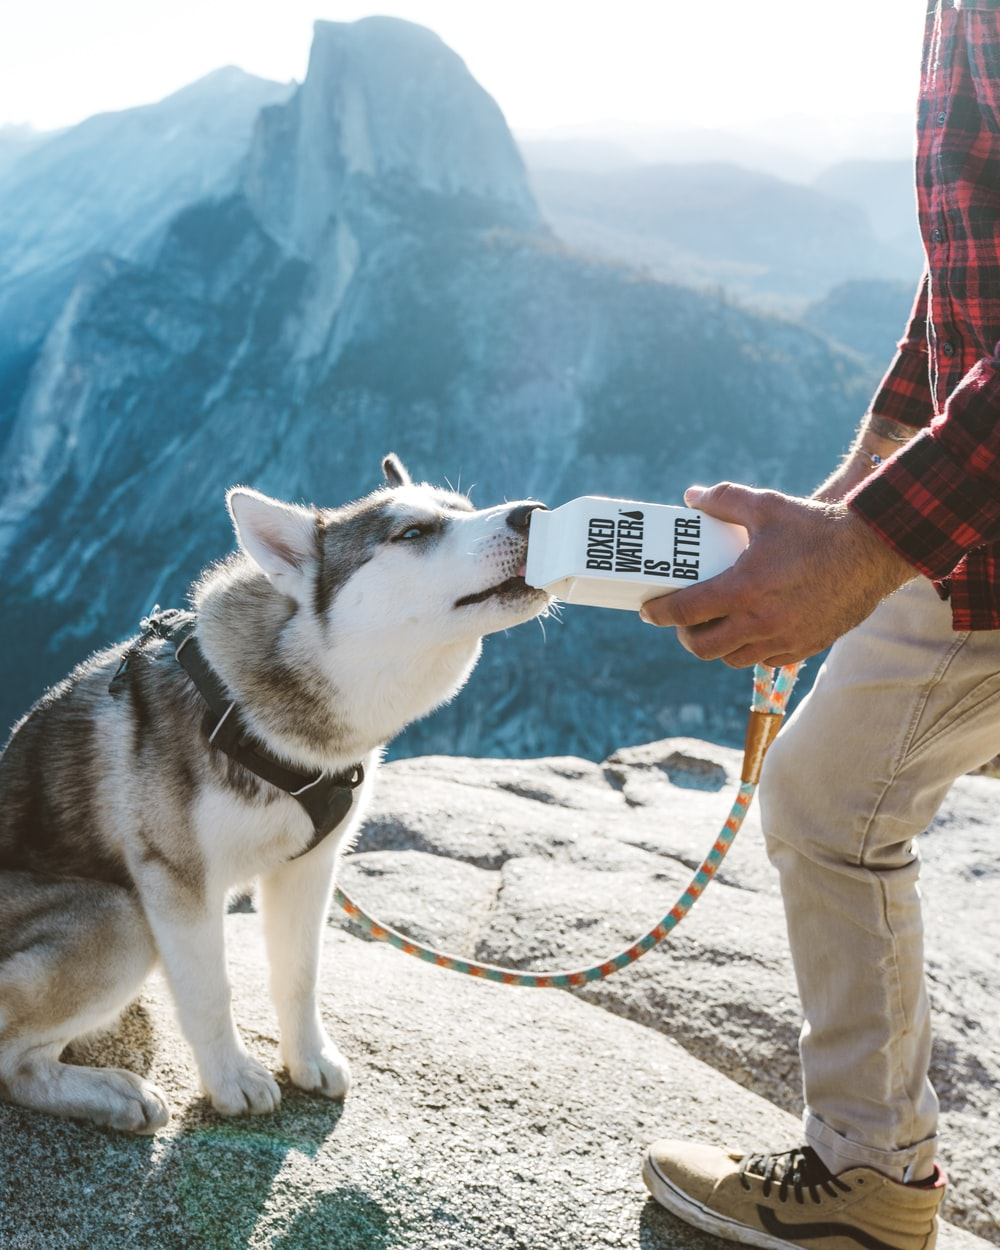 A gray and white husky drinking water out of a Boxed Water carton